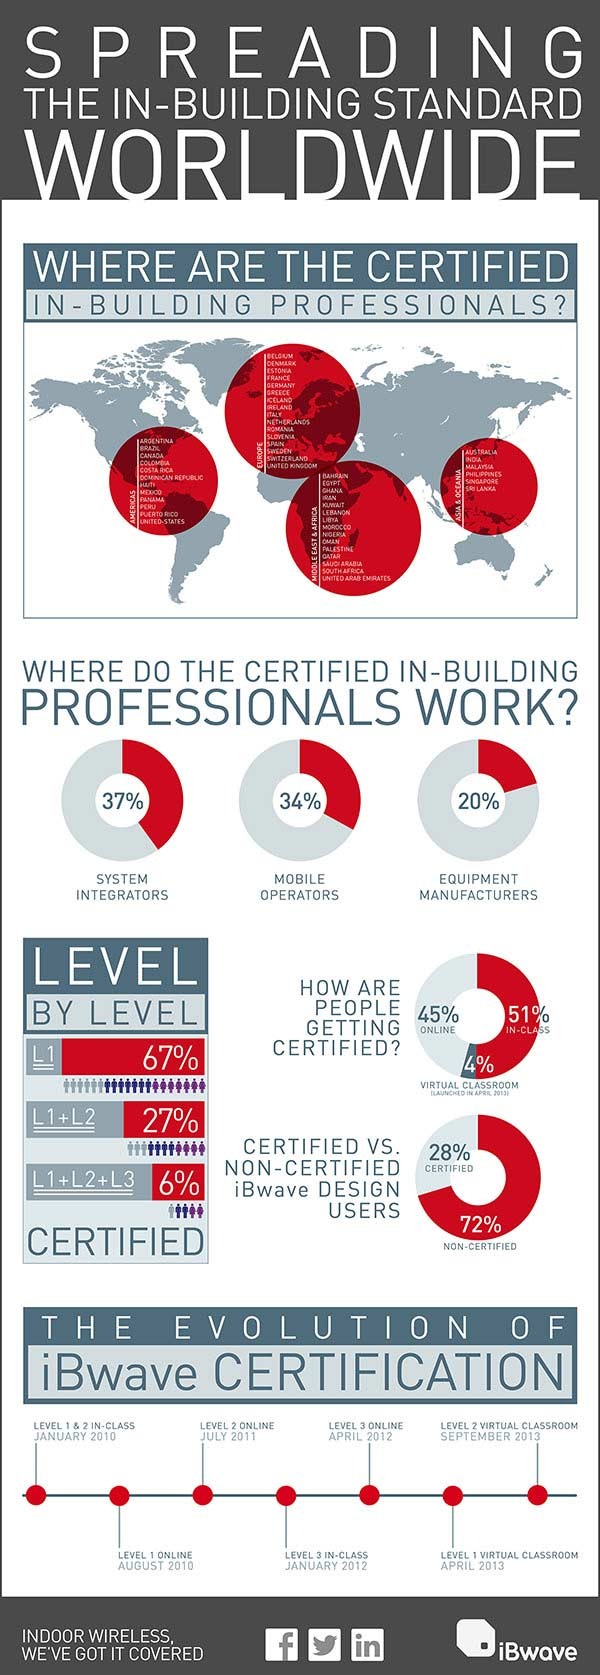 Spreading The In-Building Standard Worldwide